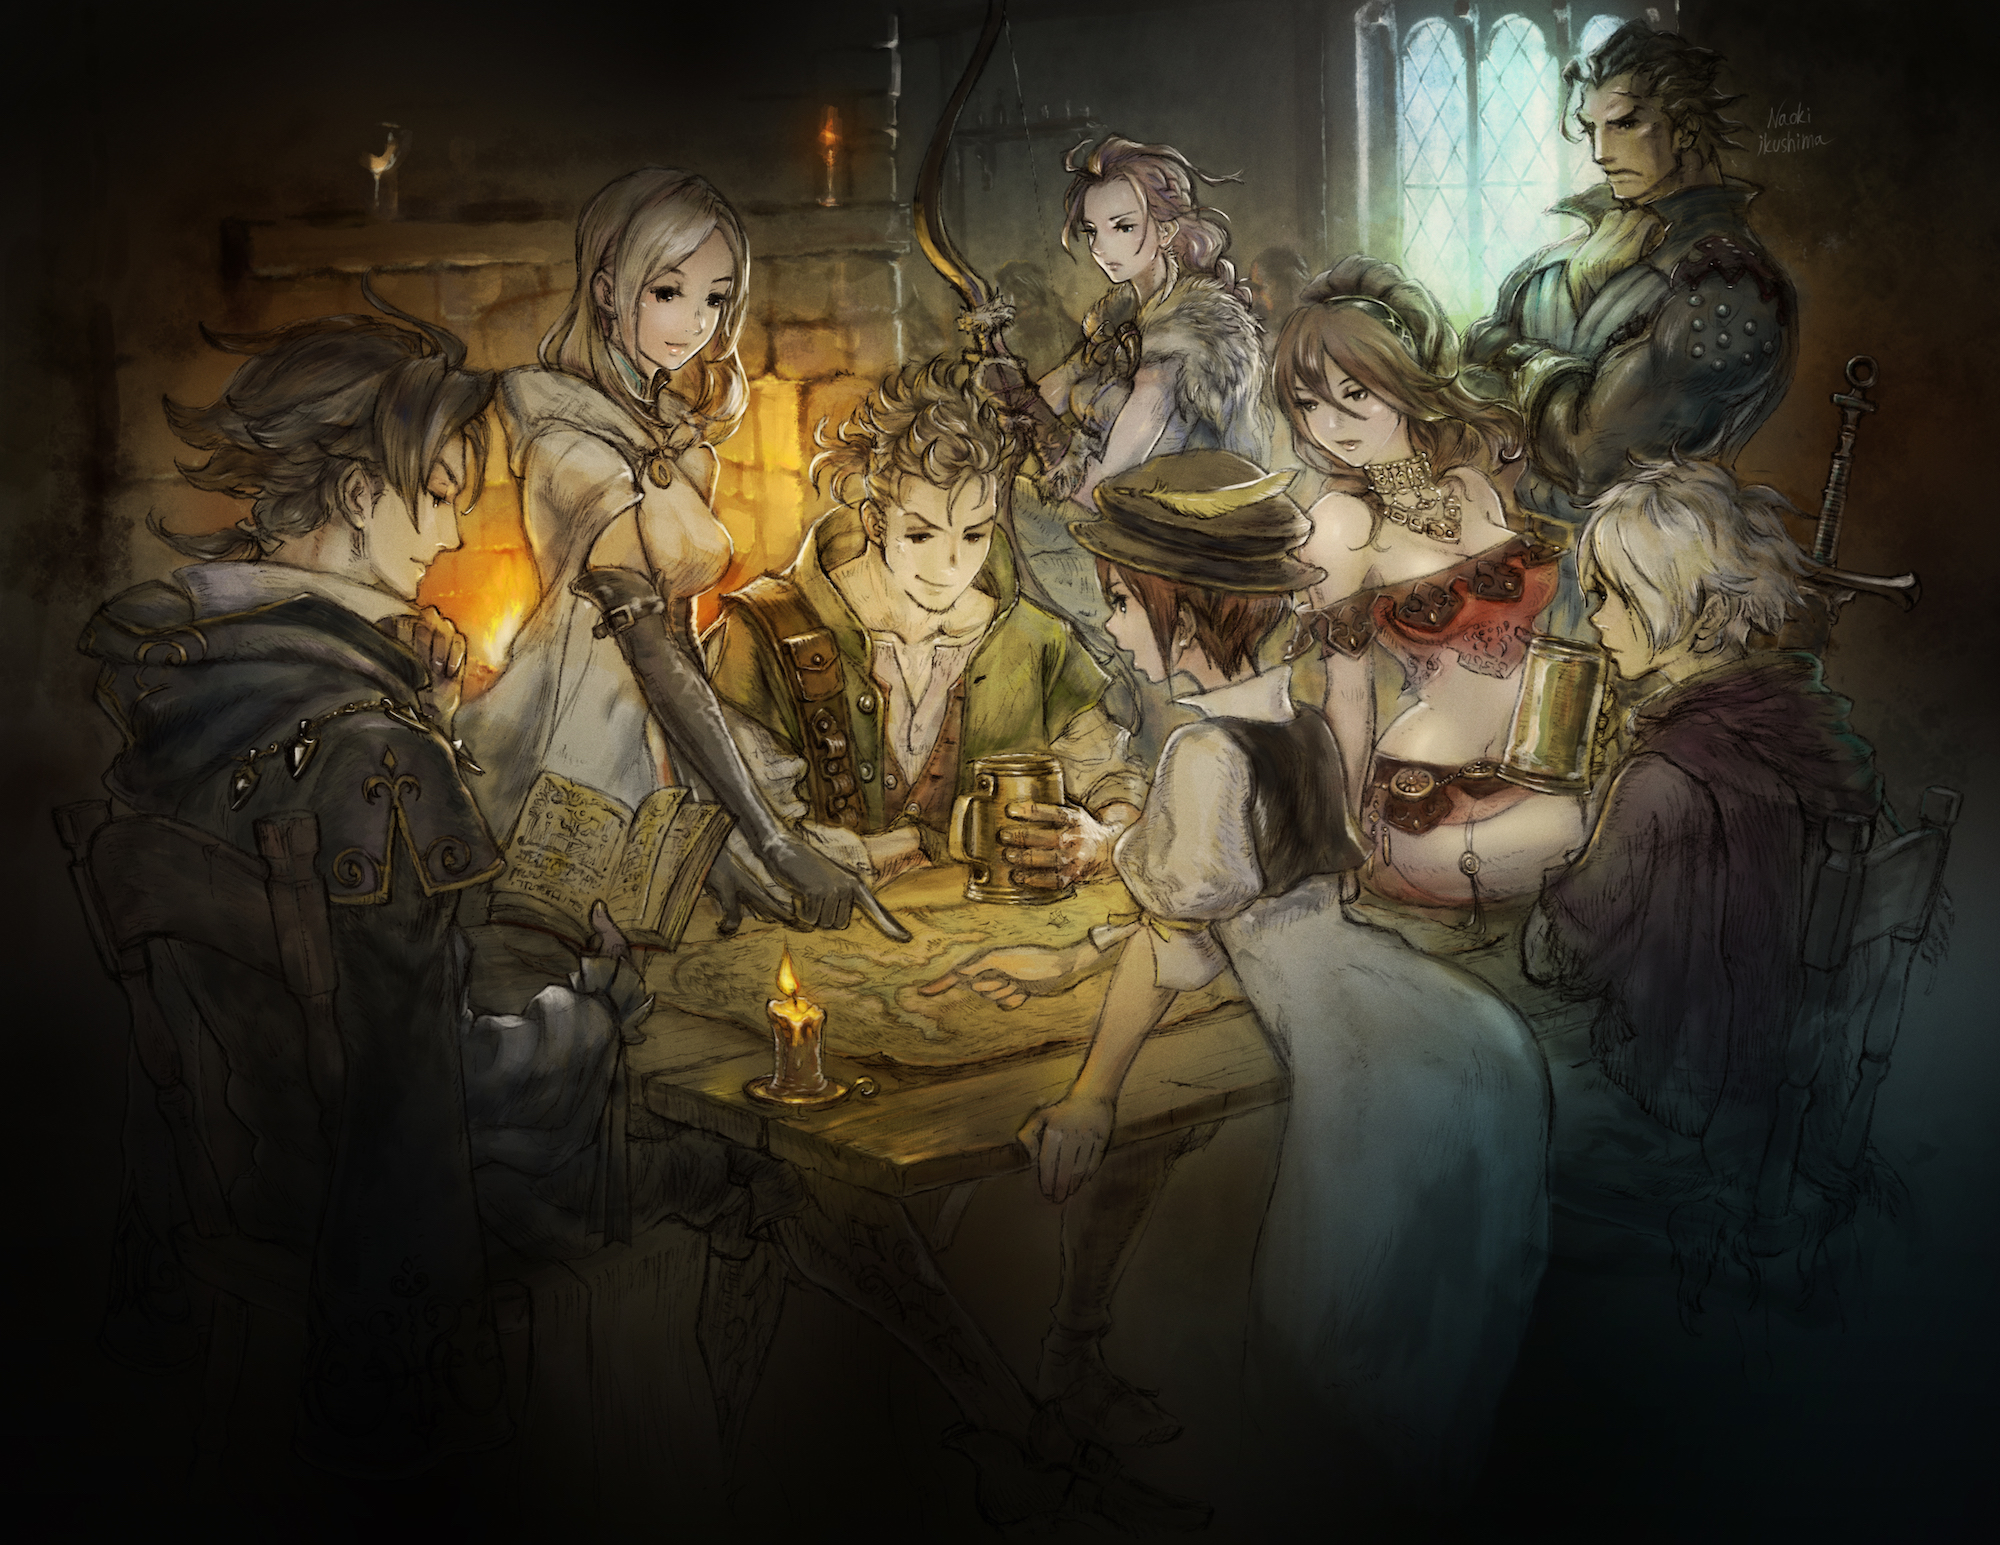 Image Octopath Traveler characters looking at a map in preparation of their next move